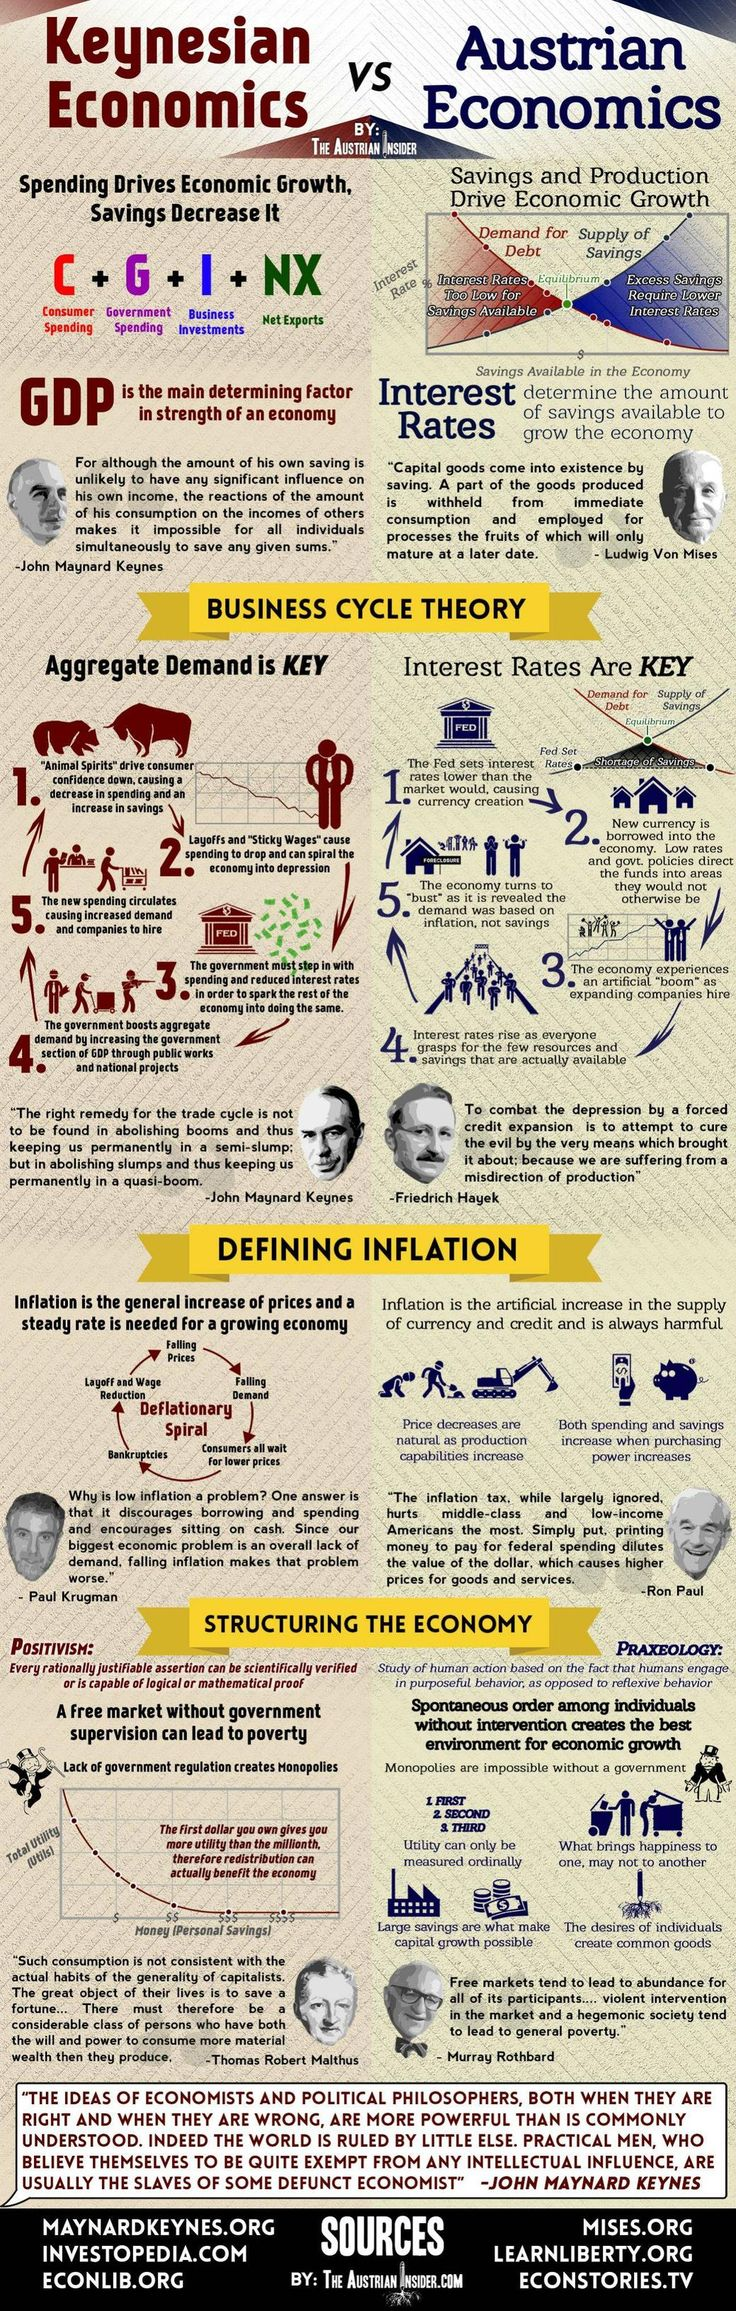 Austrian Economics vs. Keynesian Economics in One Simple Chart